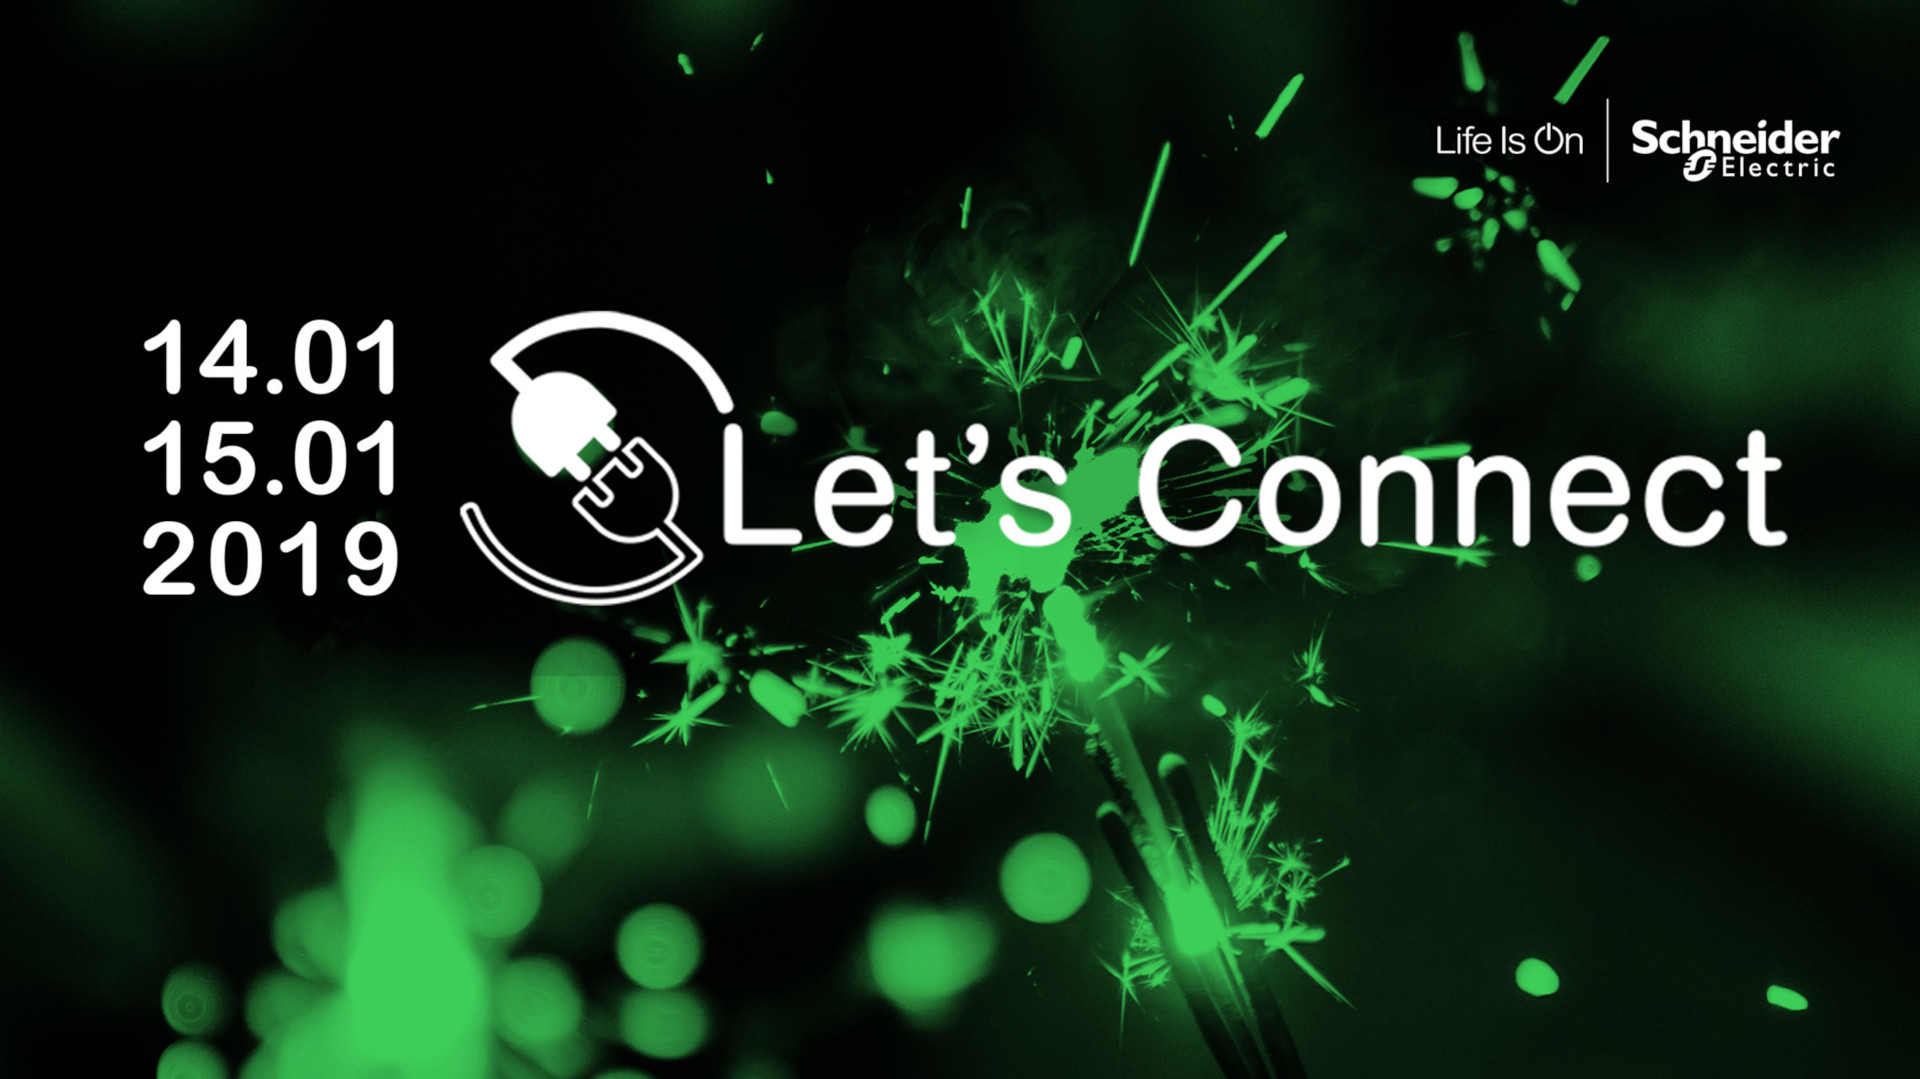 Let's connect 2019